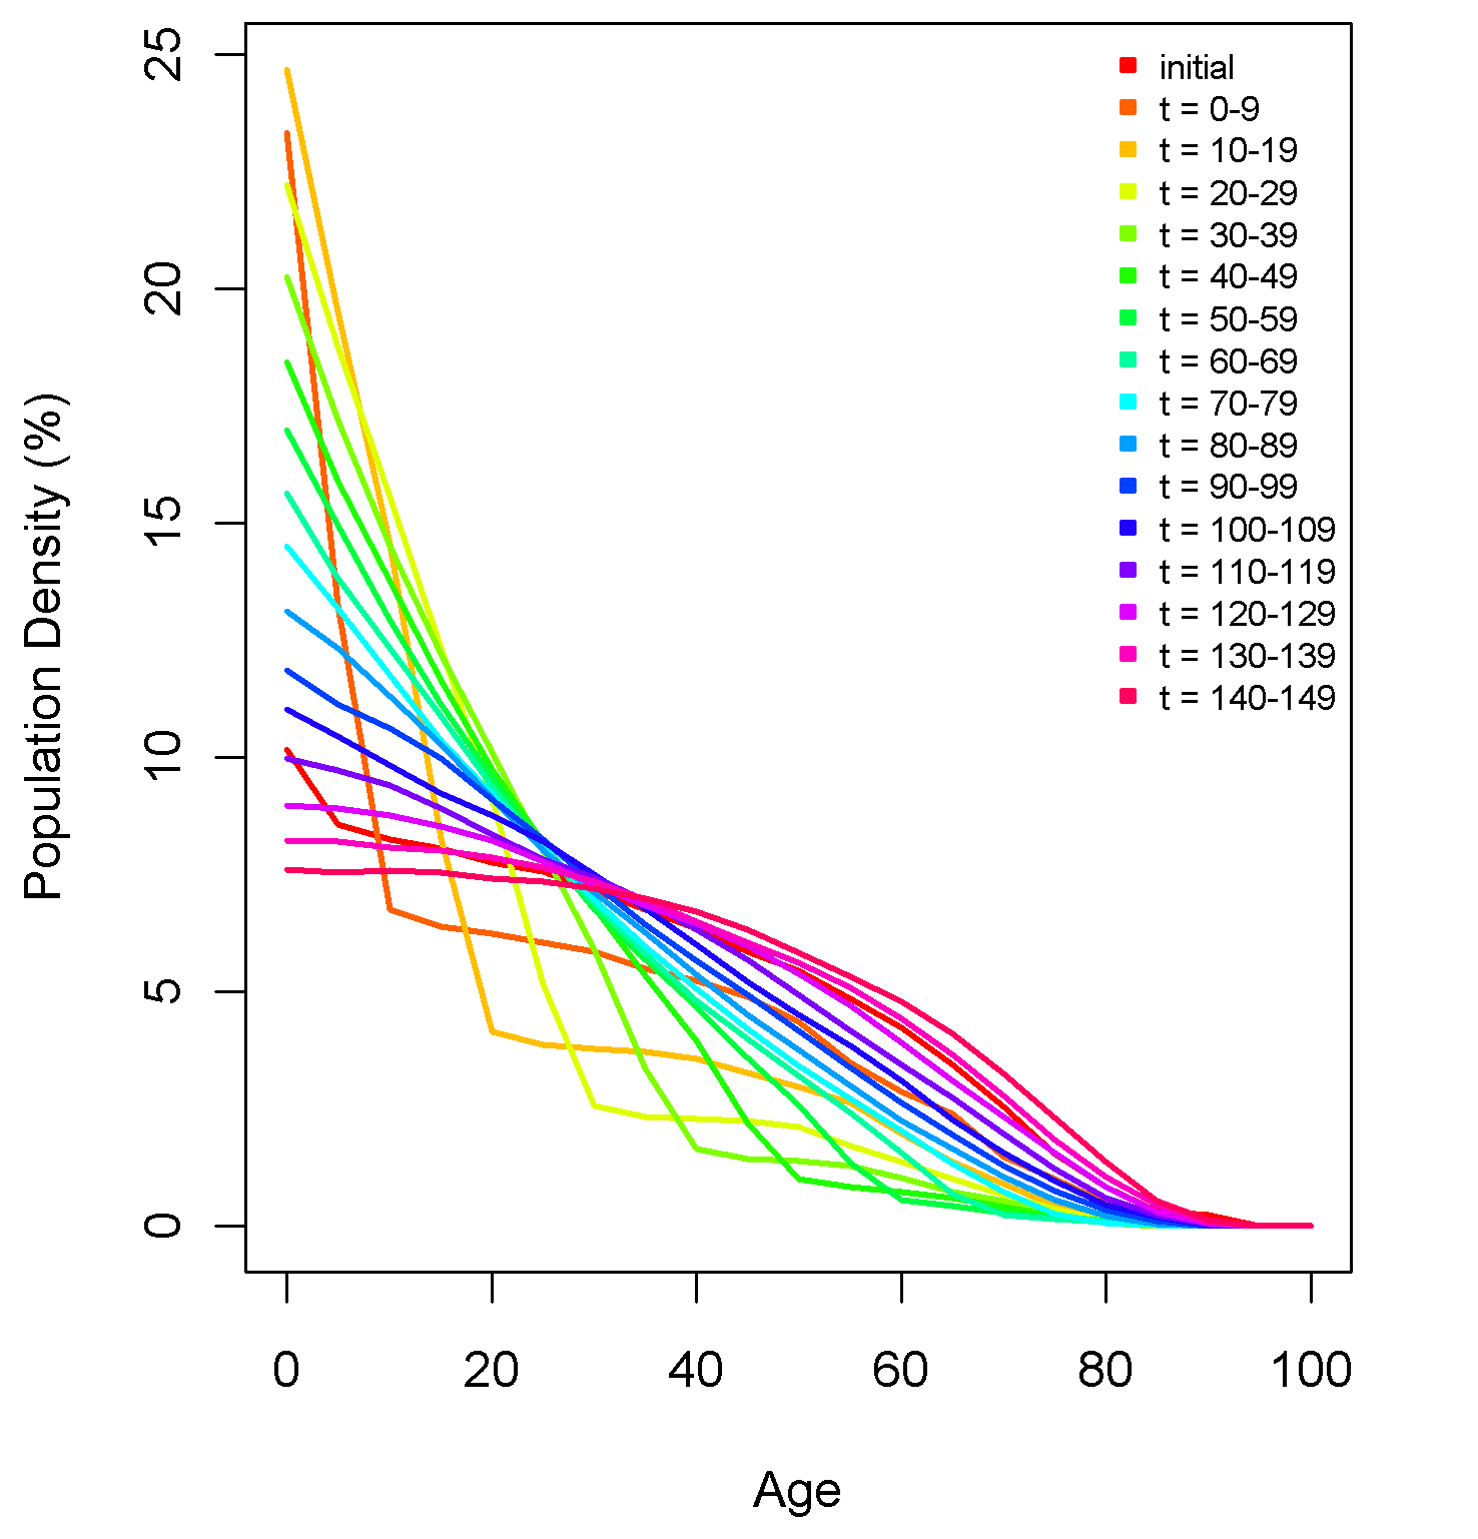 An example of the effect of fertility and mortality evolution over time on the simulated population age-structure with no migration.